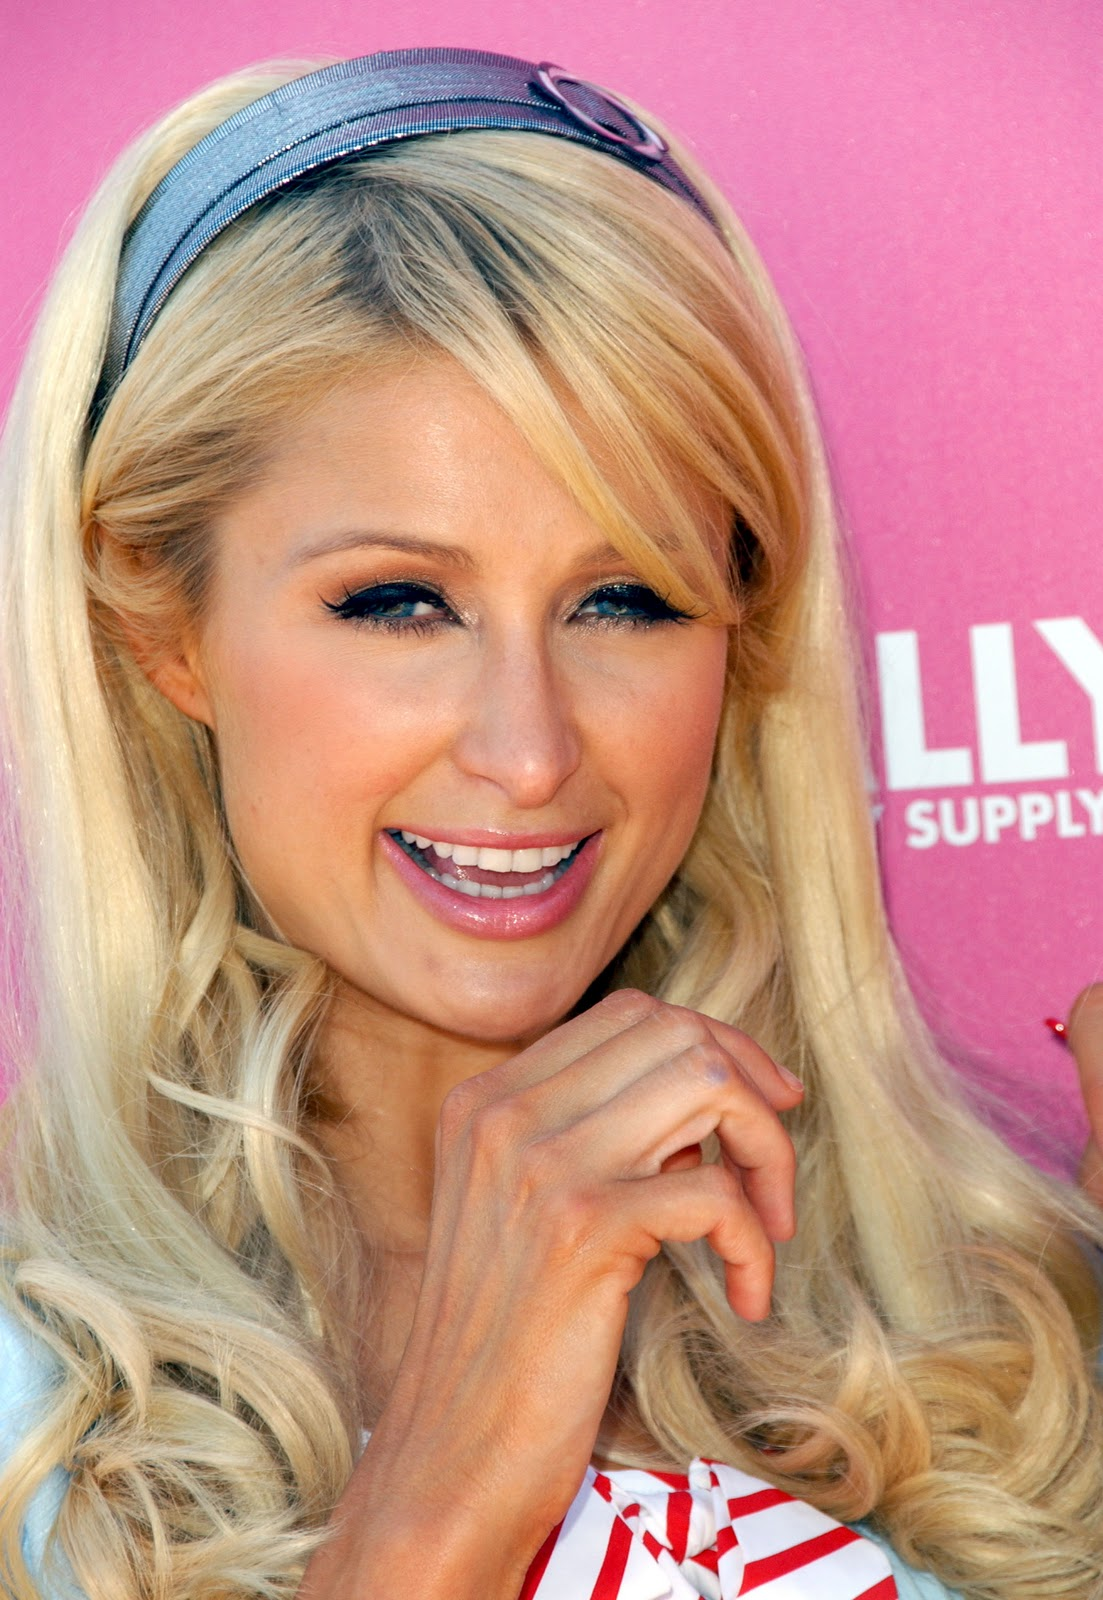 Hairstyles For Celebrity Celebrity Hairstyles Paris Hilton